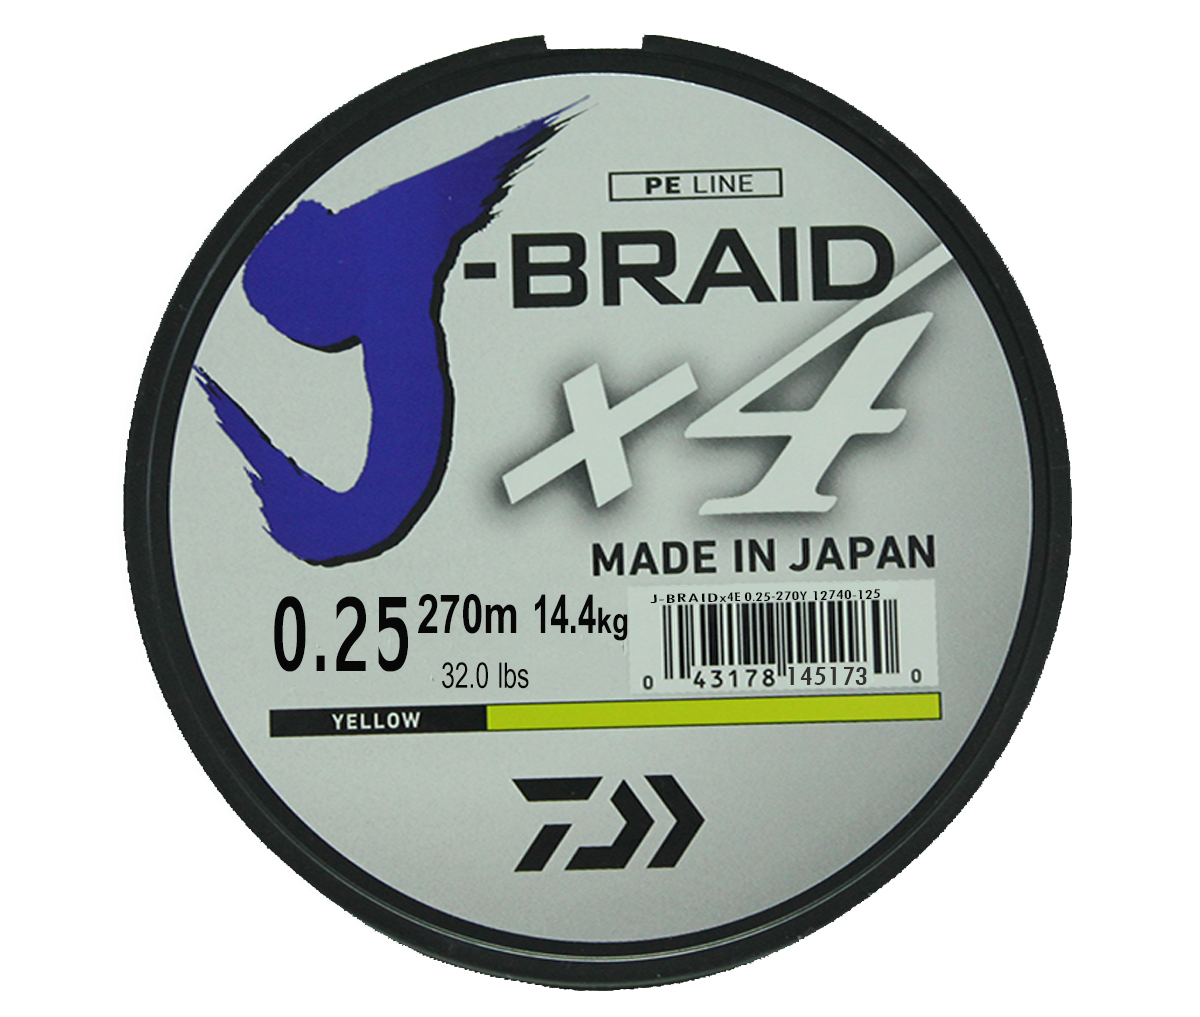 Леска плетеная Daiwa J-Braid X4, цвет: флуоресцентный желтый, 270 м, 0,25 мм szgaoy ac250v dc12v yellow led reset push button switch w terminal silver yellow